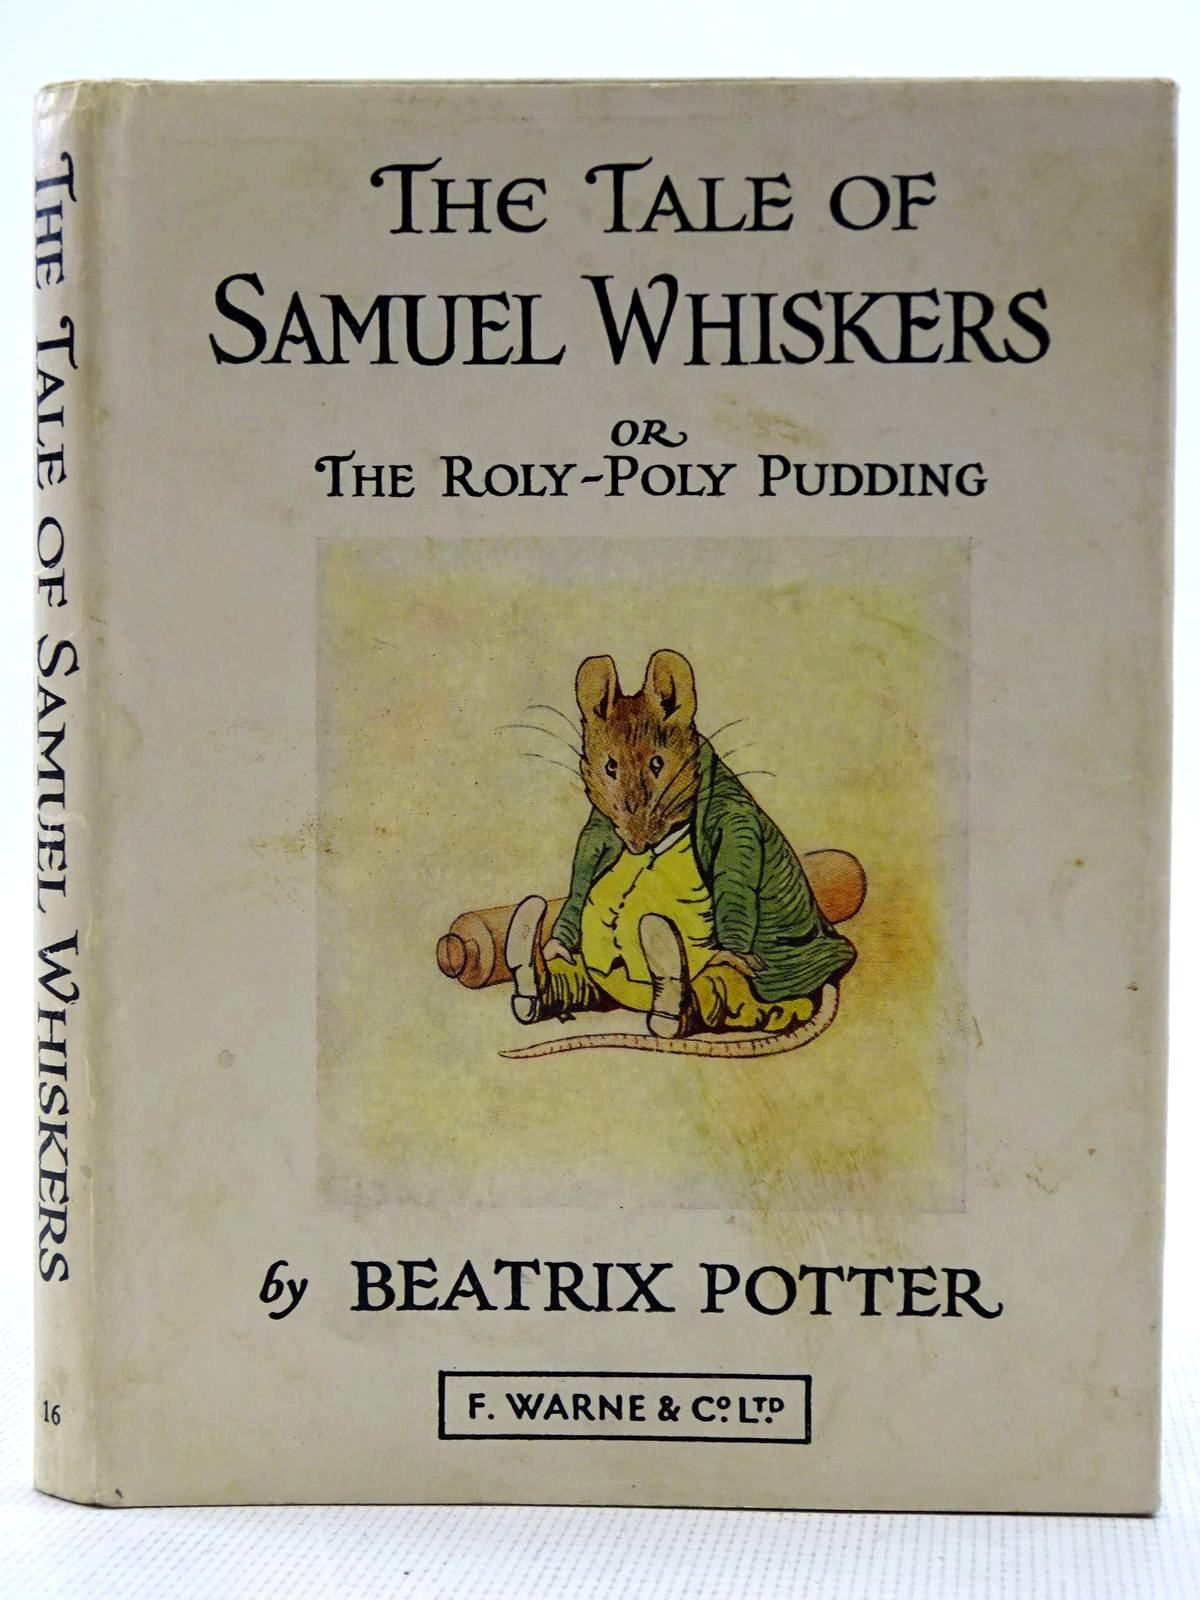 Photo of THE TALE OF SAMUEL WHISKERS OR THE ROLY-POLY PUDDING written by Potter, Beatrix illustrated by Potter, Beatrix published by Frederick Warne & Co Ltd. (STOCK CODE: 2128483)  for sale by Stella & Rose's Books